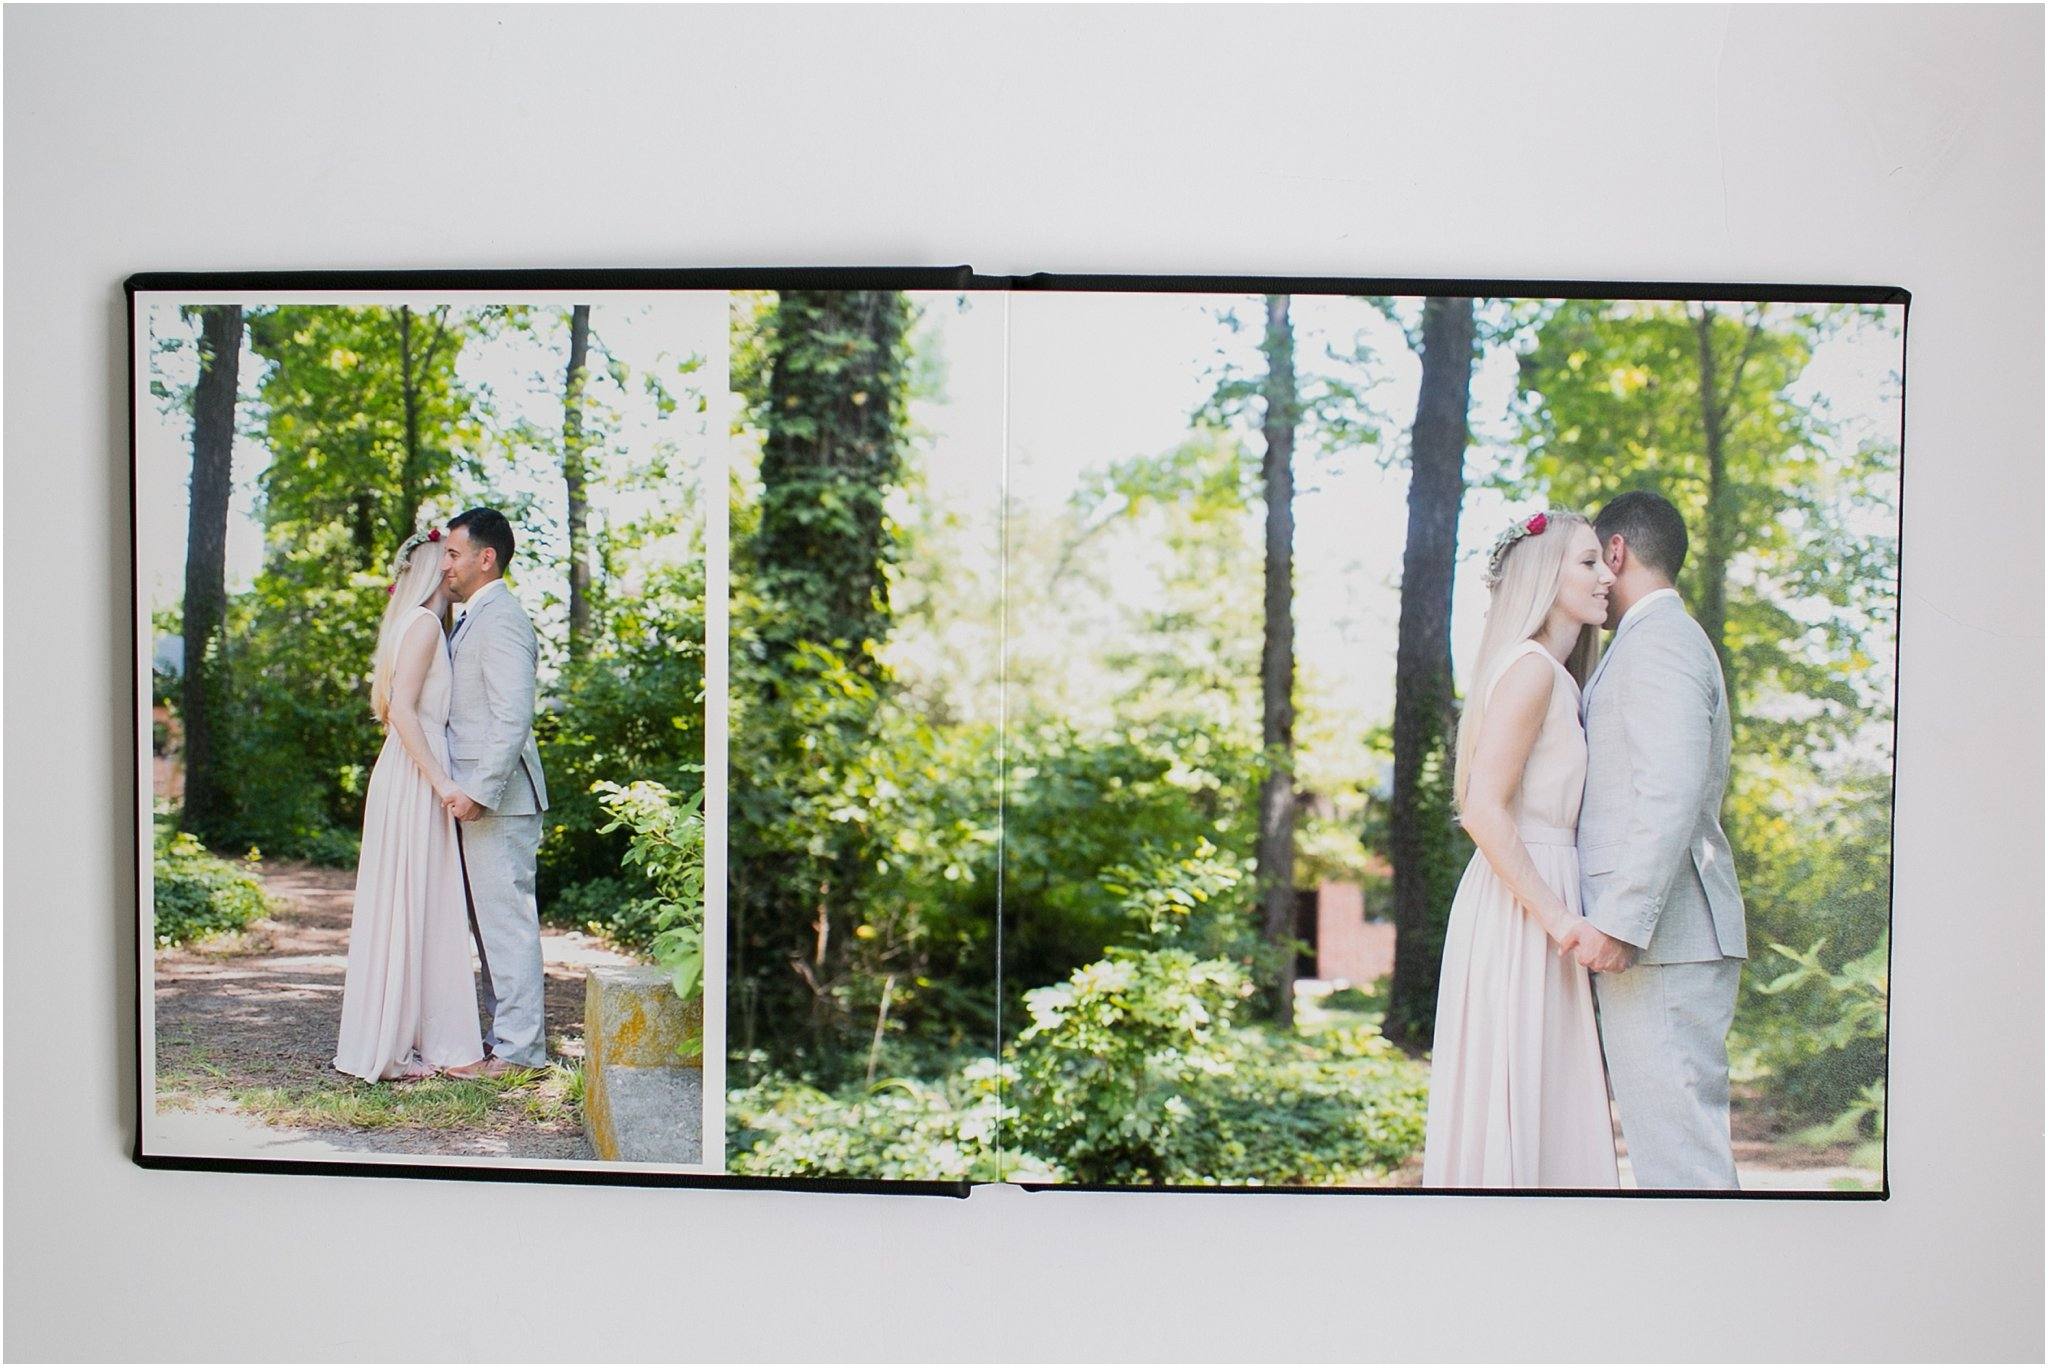 jessica_ryan_photography_millers_signature_album_wedding_photography_album_virginia_hermitage_museum_and_gardens_3187